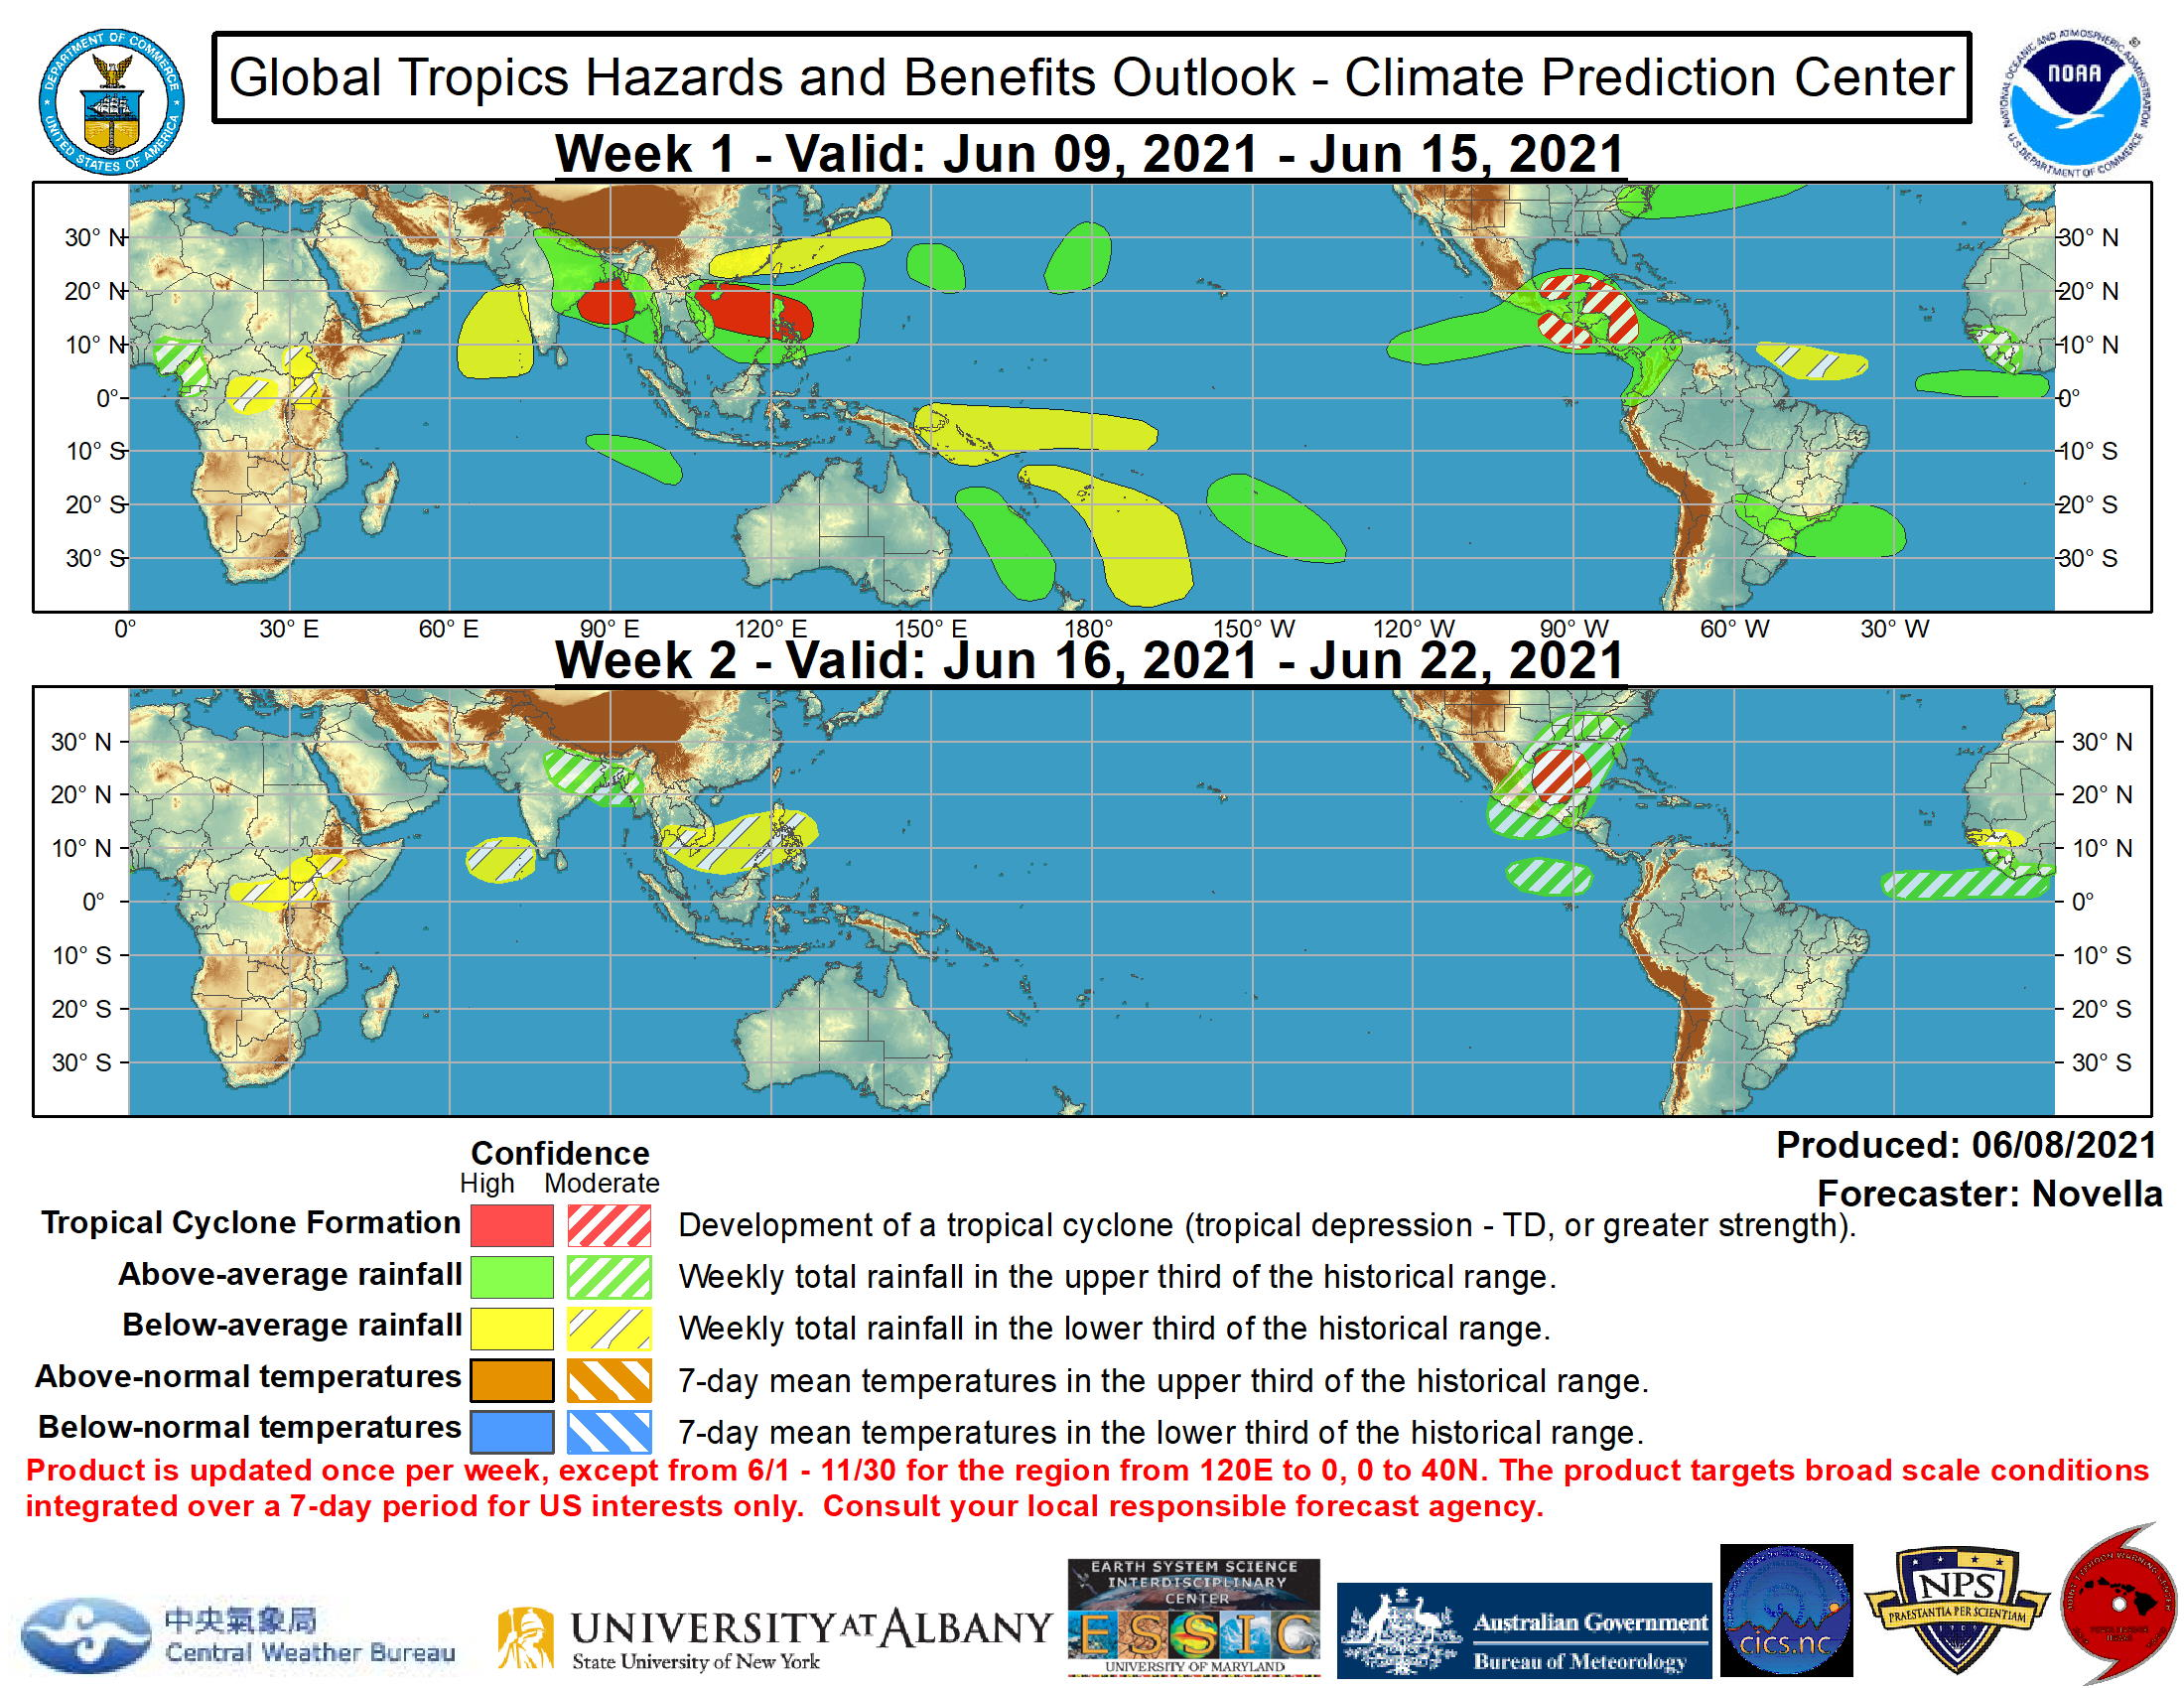 In the western Hemisphere, the National Hurricane Center (NHC) anticipates the development of a broad trough of low pressure located to the south of Central America and extending into the Gulf of Tehuantepec. There is good model support for the enhancement of the Central American Gyre (CAG) late in week-1, and with probabilistic TC tools indicating moderate chances for development in the region a moderate confidence area is highlighted in the outlook for week-1. Tied to this favorable circulation environment, the NHC also anticipates the development of an area of low pressure across the southwestern Caribbean. The GEFS continues to depict several ensemble member low centers shifting northwestward into the Gulf of Honduras and into the Bay of Campeche by late in week-1. Given lesser support of this realization in the ECMWF guidance, a moderate confidence area is present for week-1. By the early portion of week-2, probabilistic TC tools maintain elevated chances of formation focused in the western Gulf of Mexico associated with mean low pressure in the ensembles. In the event a system does not develop further south during the week-1 period, a moderate confidence region is also added over the Gulf of Mexico to account for this potential. Regardless of formation, enhanced precipitation is favored across much of Central America, Mexico, the western Caribbean and into the lower Gulf States of the U.S. during the next two weeks. Elsewhere, increased signals of TC formation also exist in the western Atlantic associated with an area mid-latitude low pressure forecast to move off the Eastern Seaboard and stall offshore near the Southeast and mid-Atlantic. However, there is insufficient confidence this low will gain tropical characteristics and no corresponding TC area is posted.  The precipitation outlook during the next two weeks is largely based on a consensus among the CFS, GEFS, and ECMWF ensemble means, anticipated TC tracks, and tropical waves. For hazardous weather con